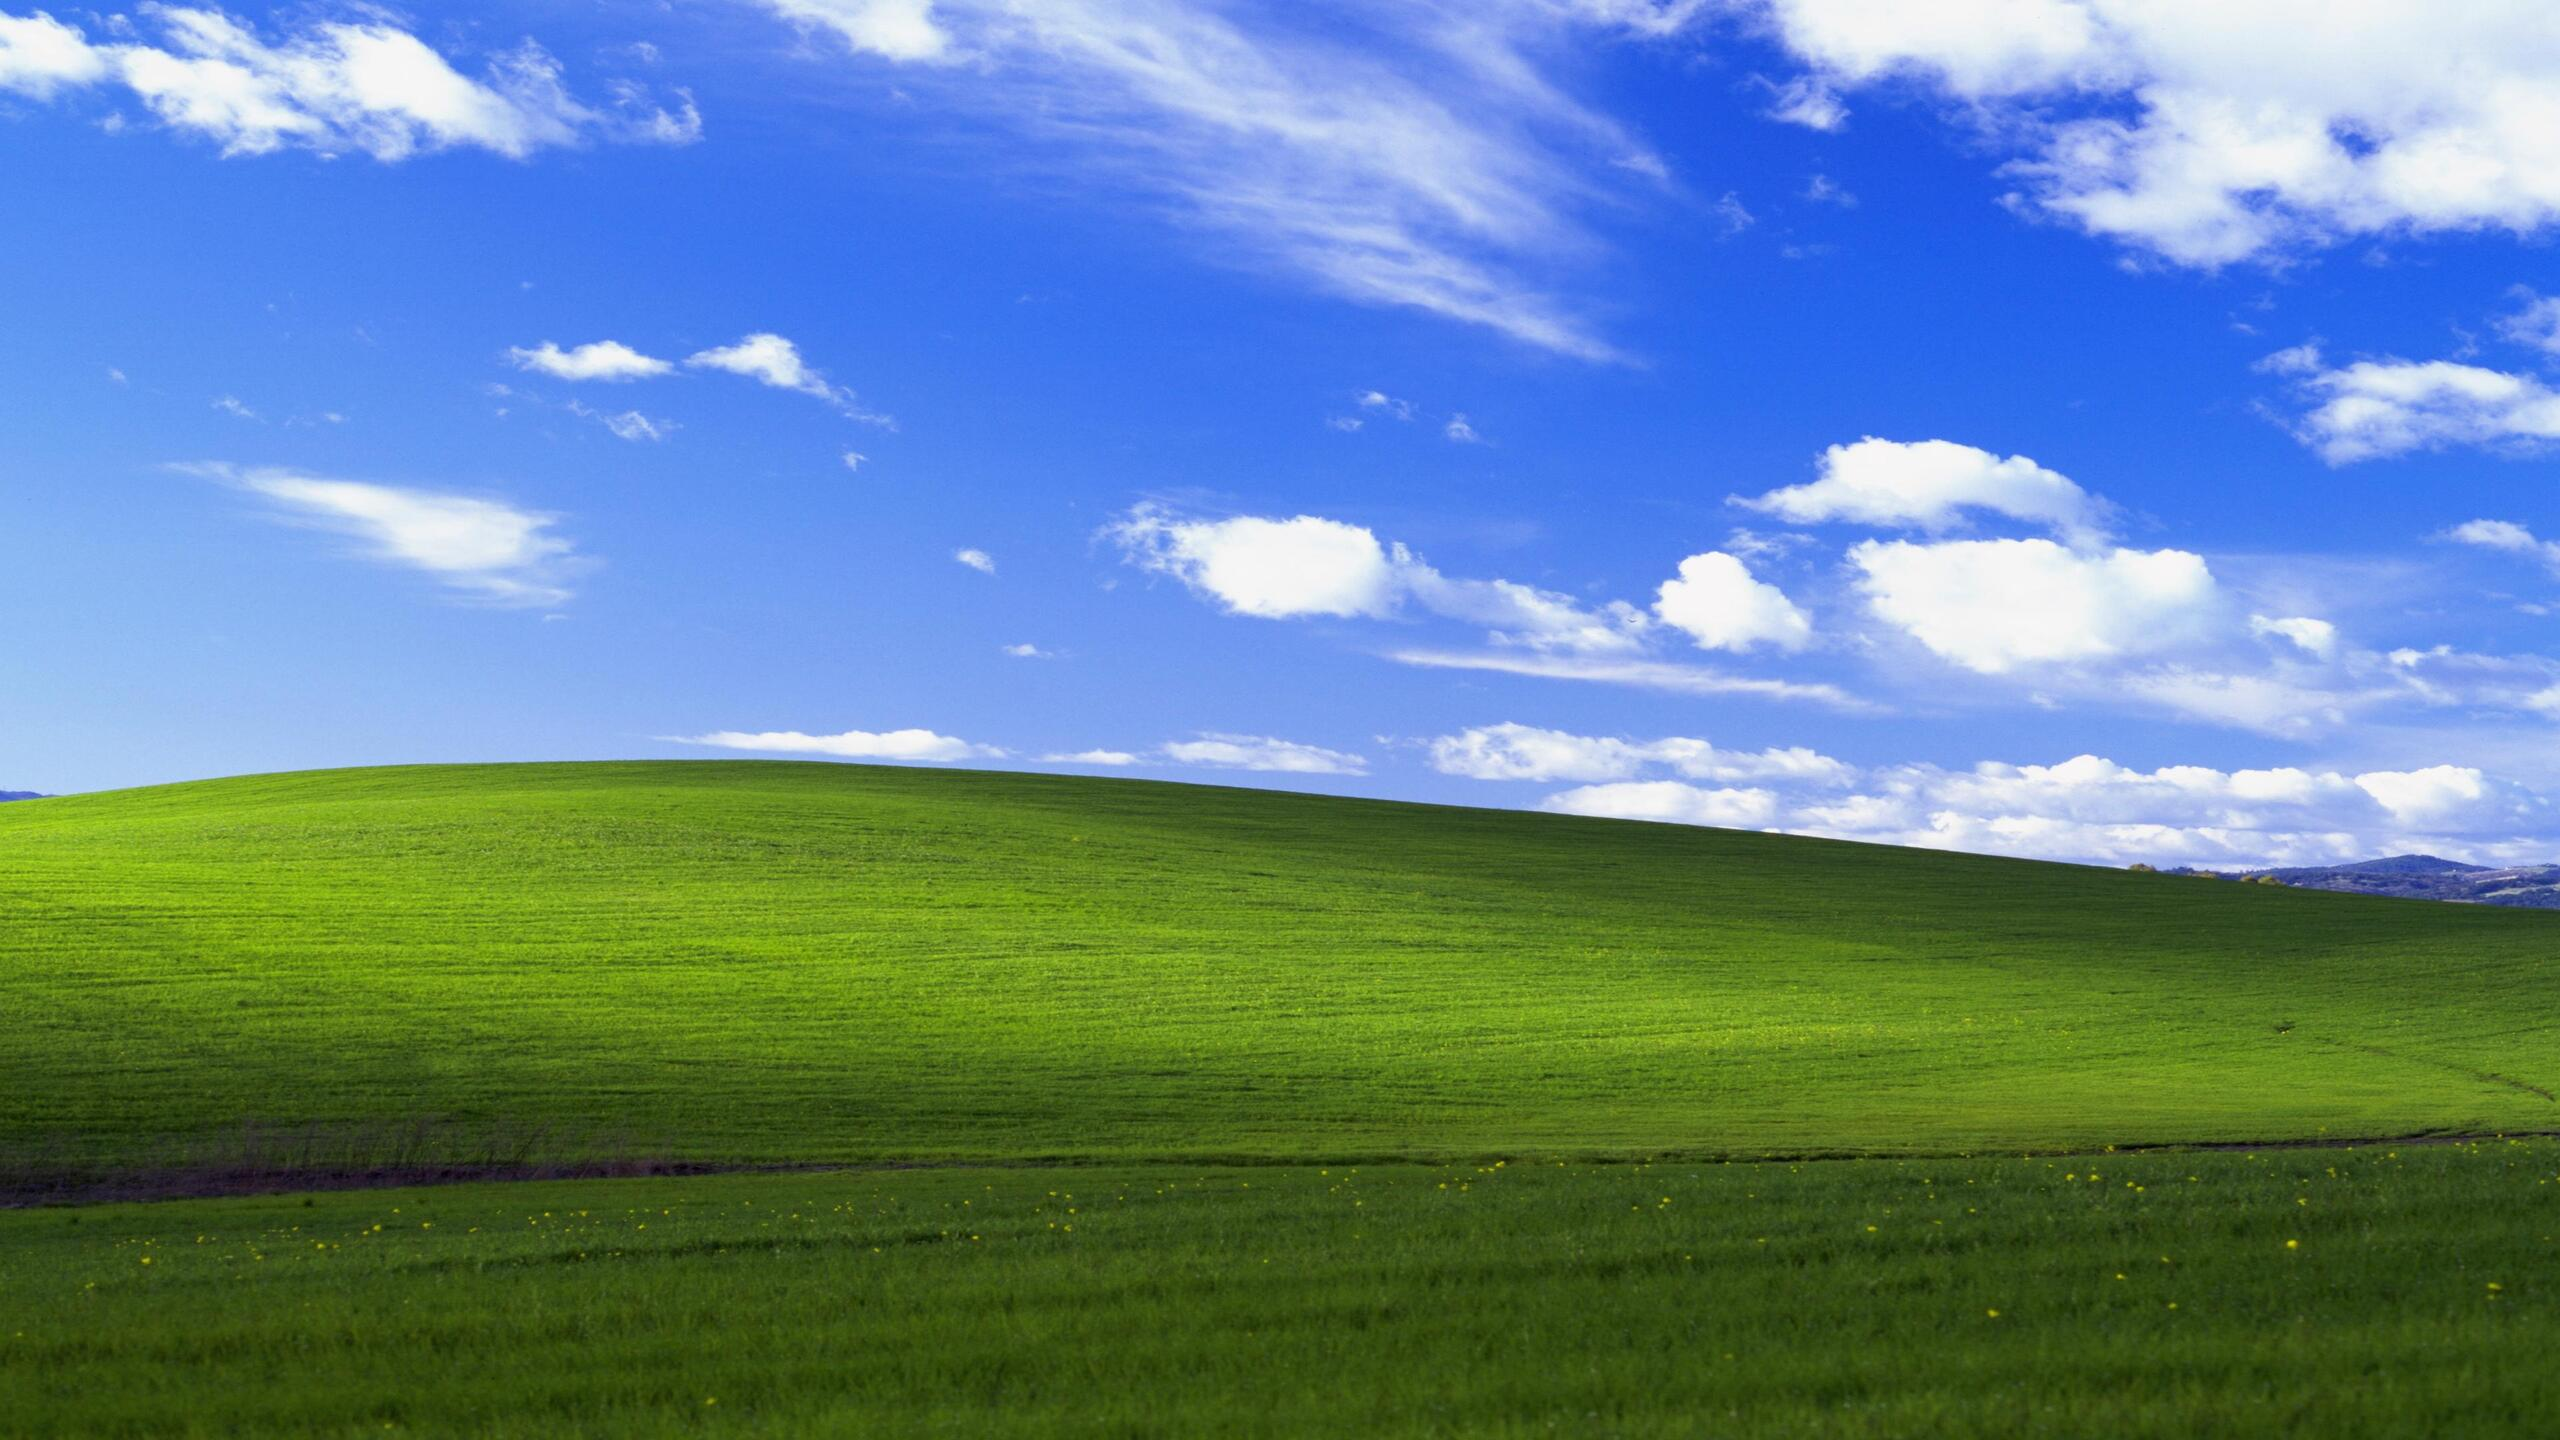 2560x1440 Windows Xp Bliss 4k 1440p Resolution Hd 4k Wallpapers Images Backgrounds Photos And Pictures